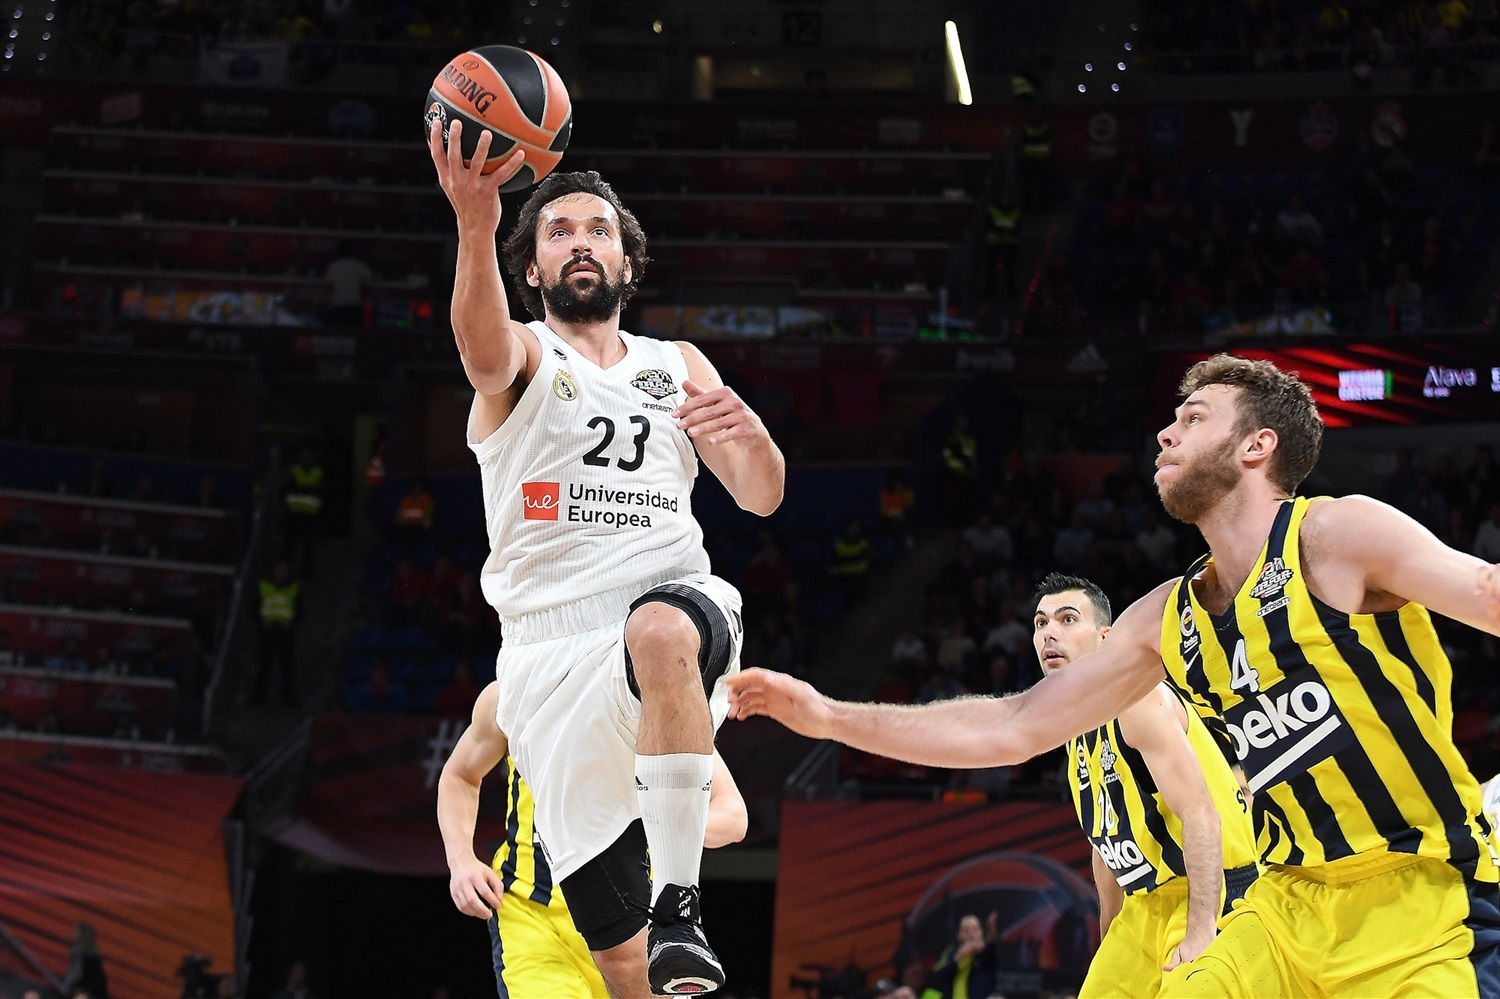 Sergio Llull - Real Madrid - Final Four Vitoria-Gasteiz 2019 - EB18